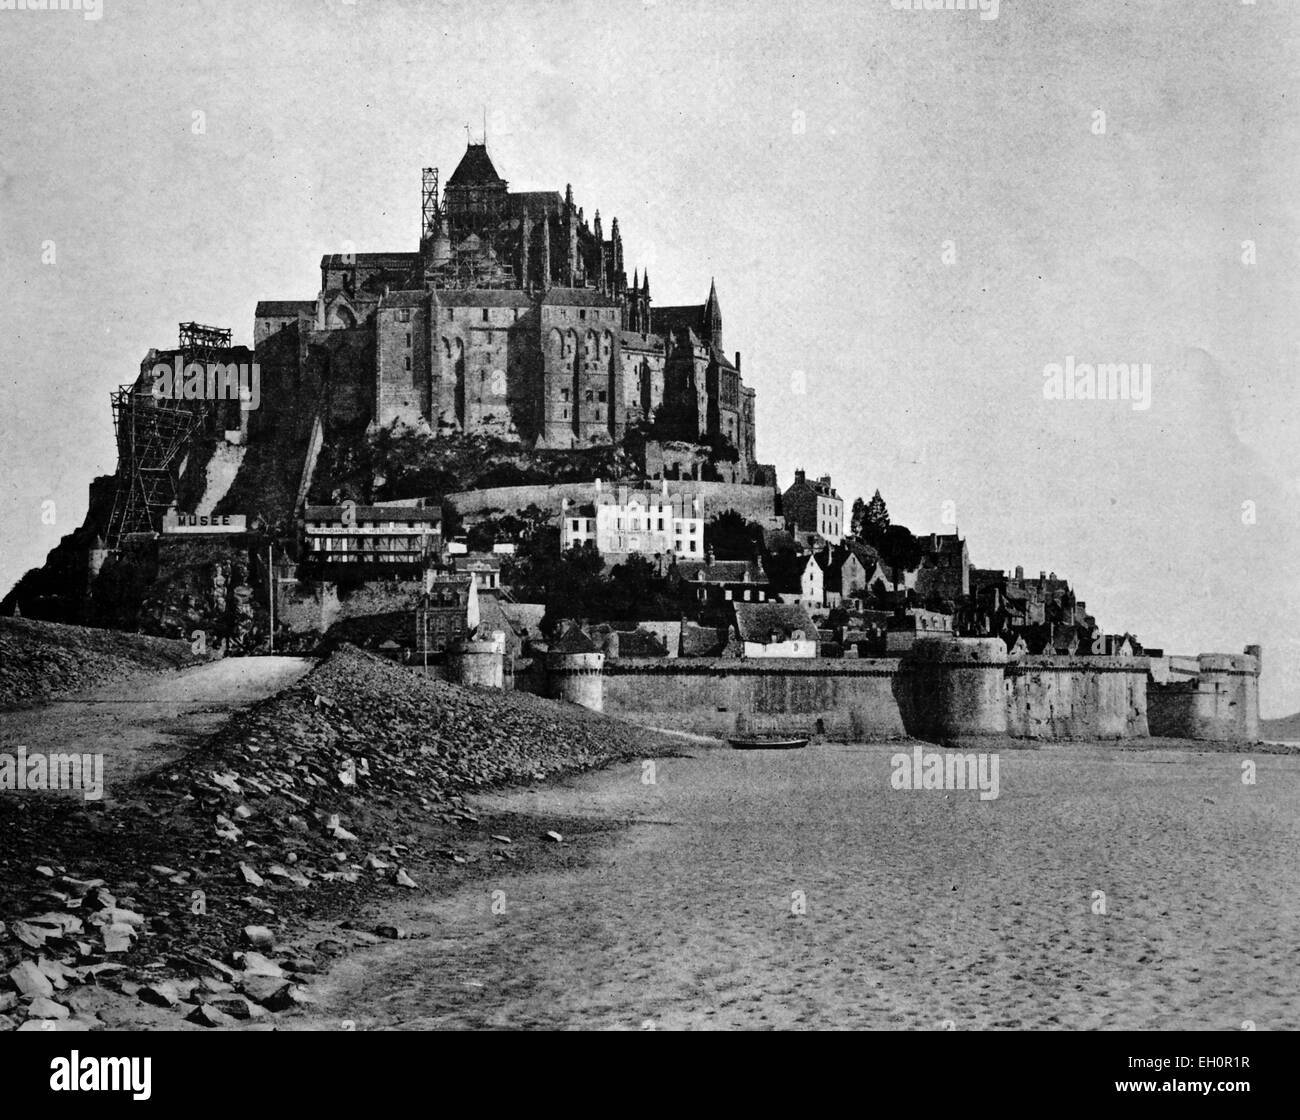 Early autotype of Mont Saint-Michel, Normandy, UNESCO World Heritage Site, France, historical photo, 1884 - Stock Image